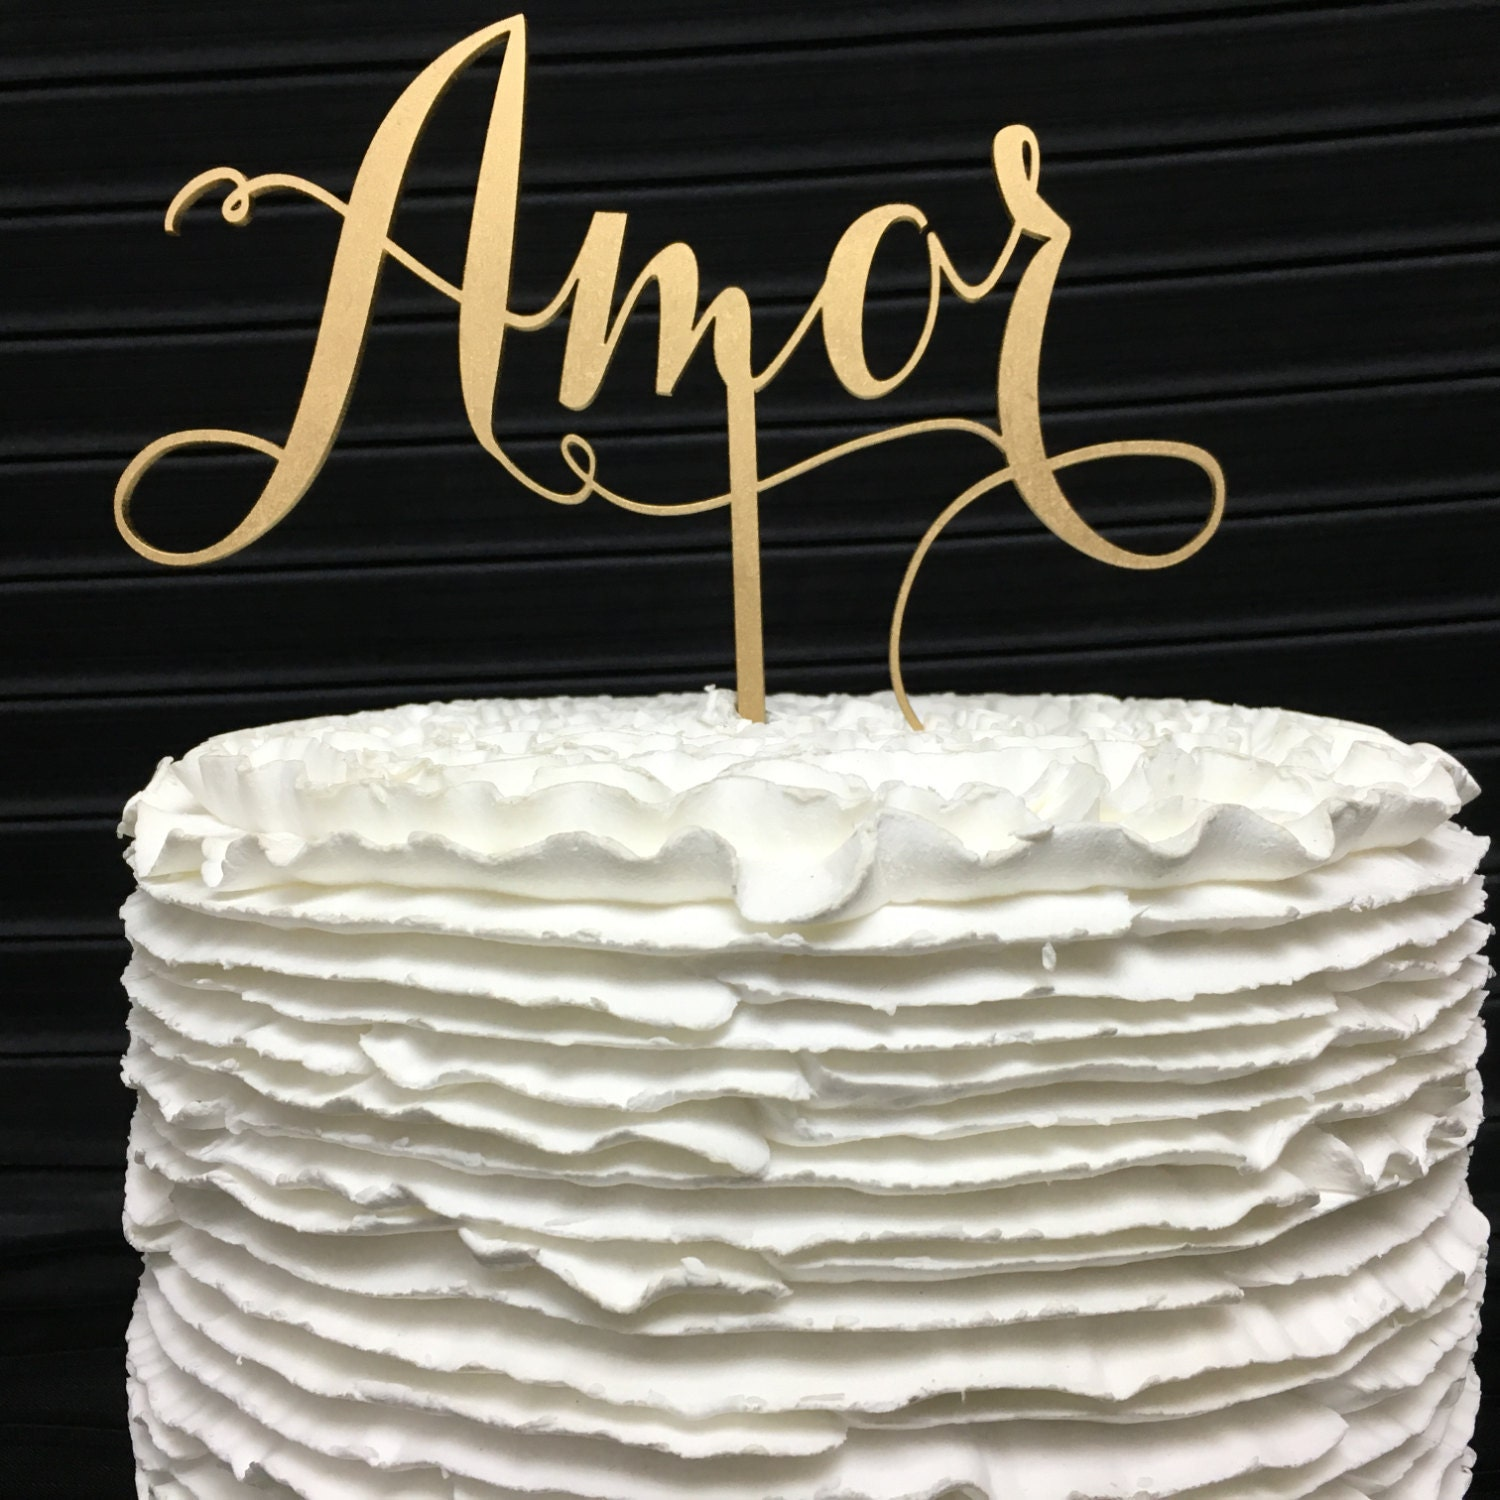 Amor cake topper wedding cake topper cake toppers for wedding amor cake topper wedding cake topper cake toppers for wedding gold cake topper rose gold cake topper silver cake topper wooden topper junglespirit Image collections